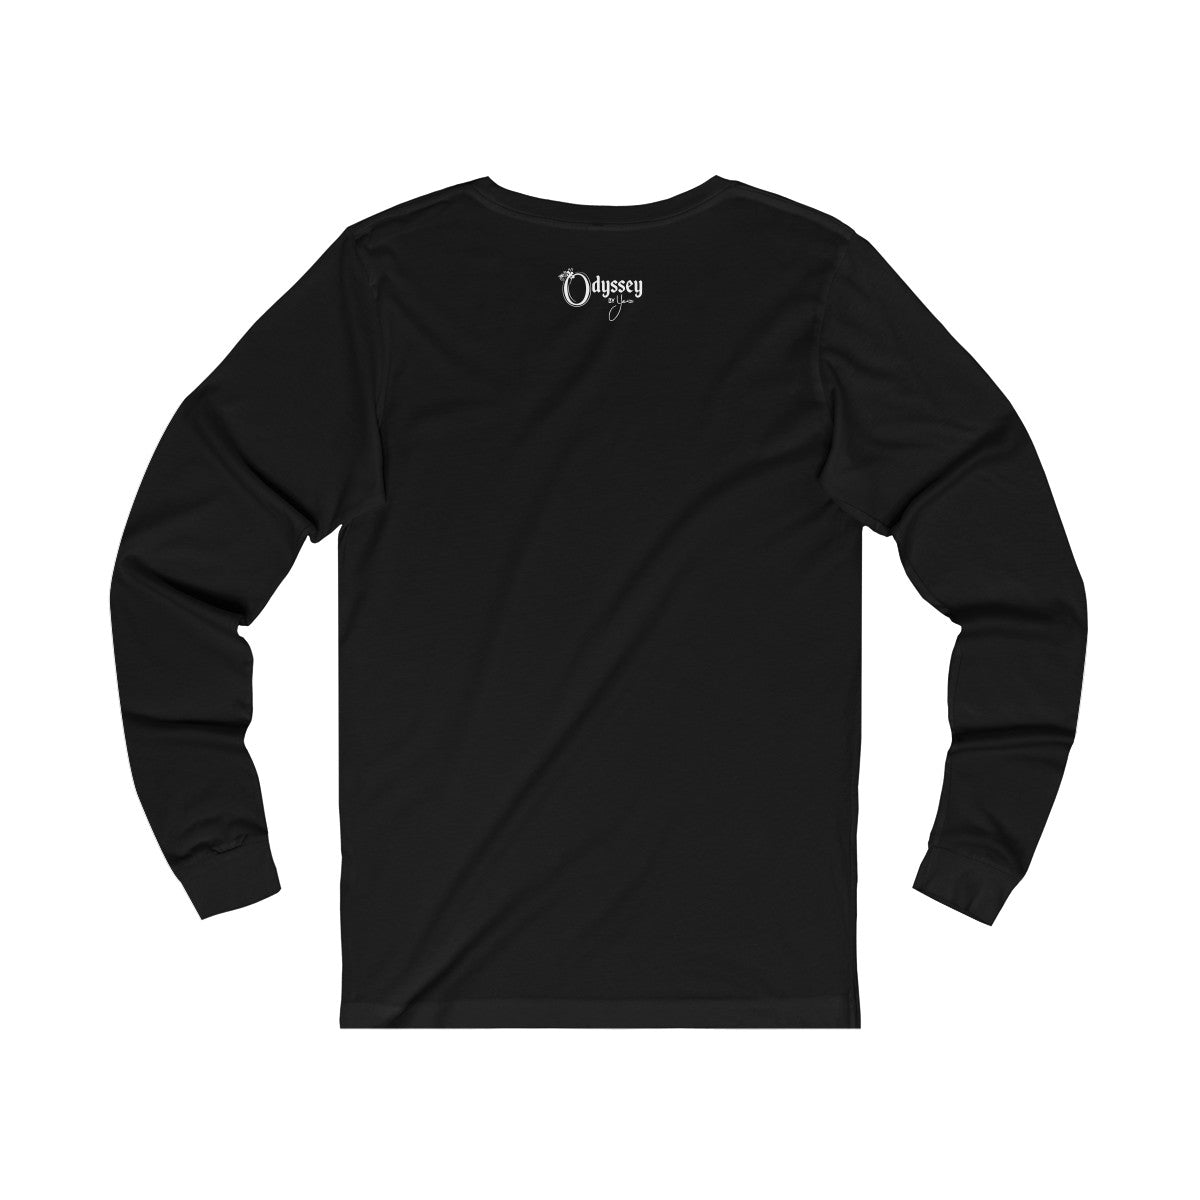 Odyssey Power Love Sound Mind Men's Long Sleeve Tee